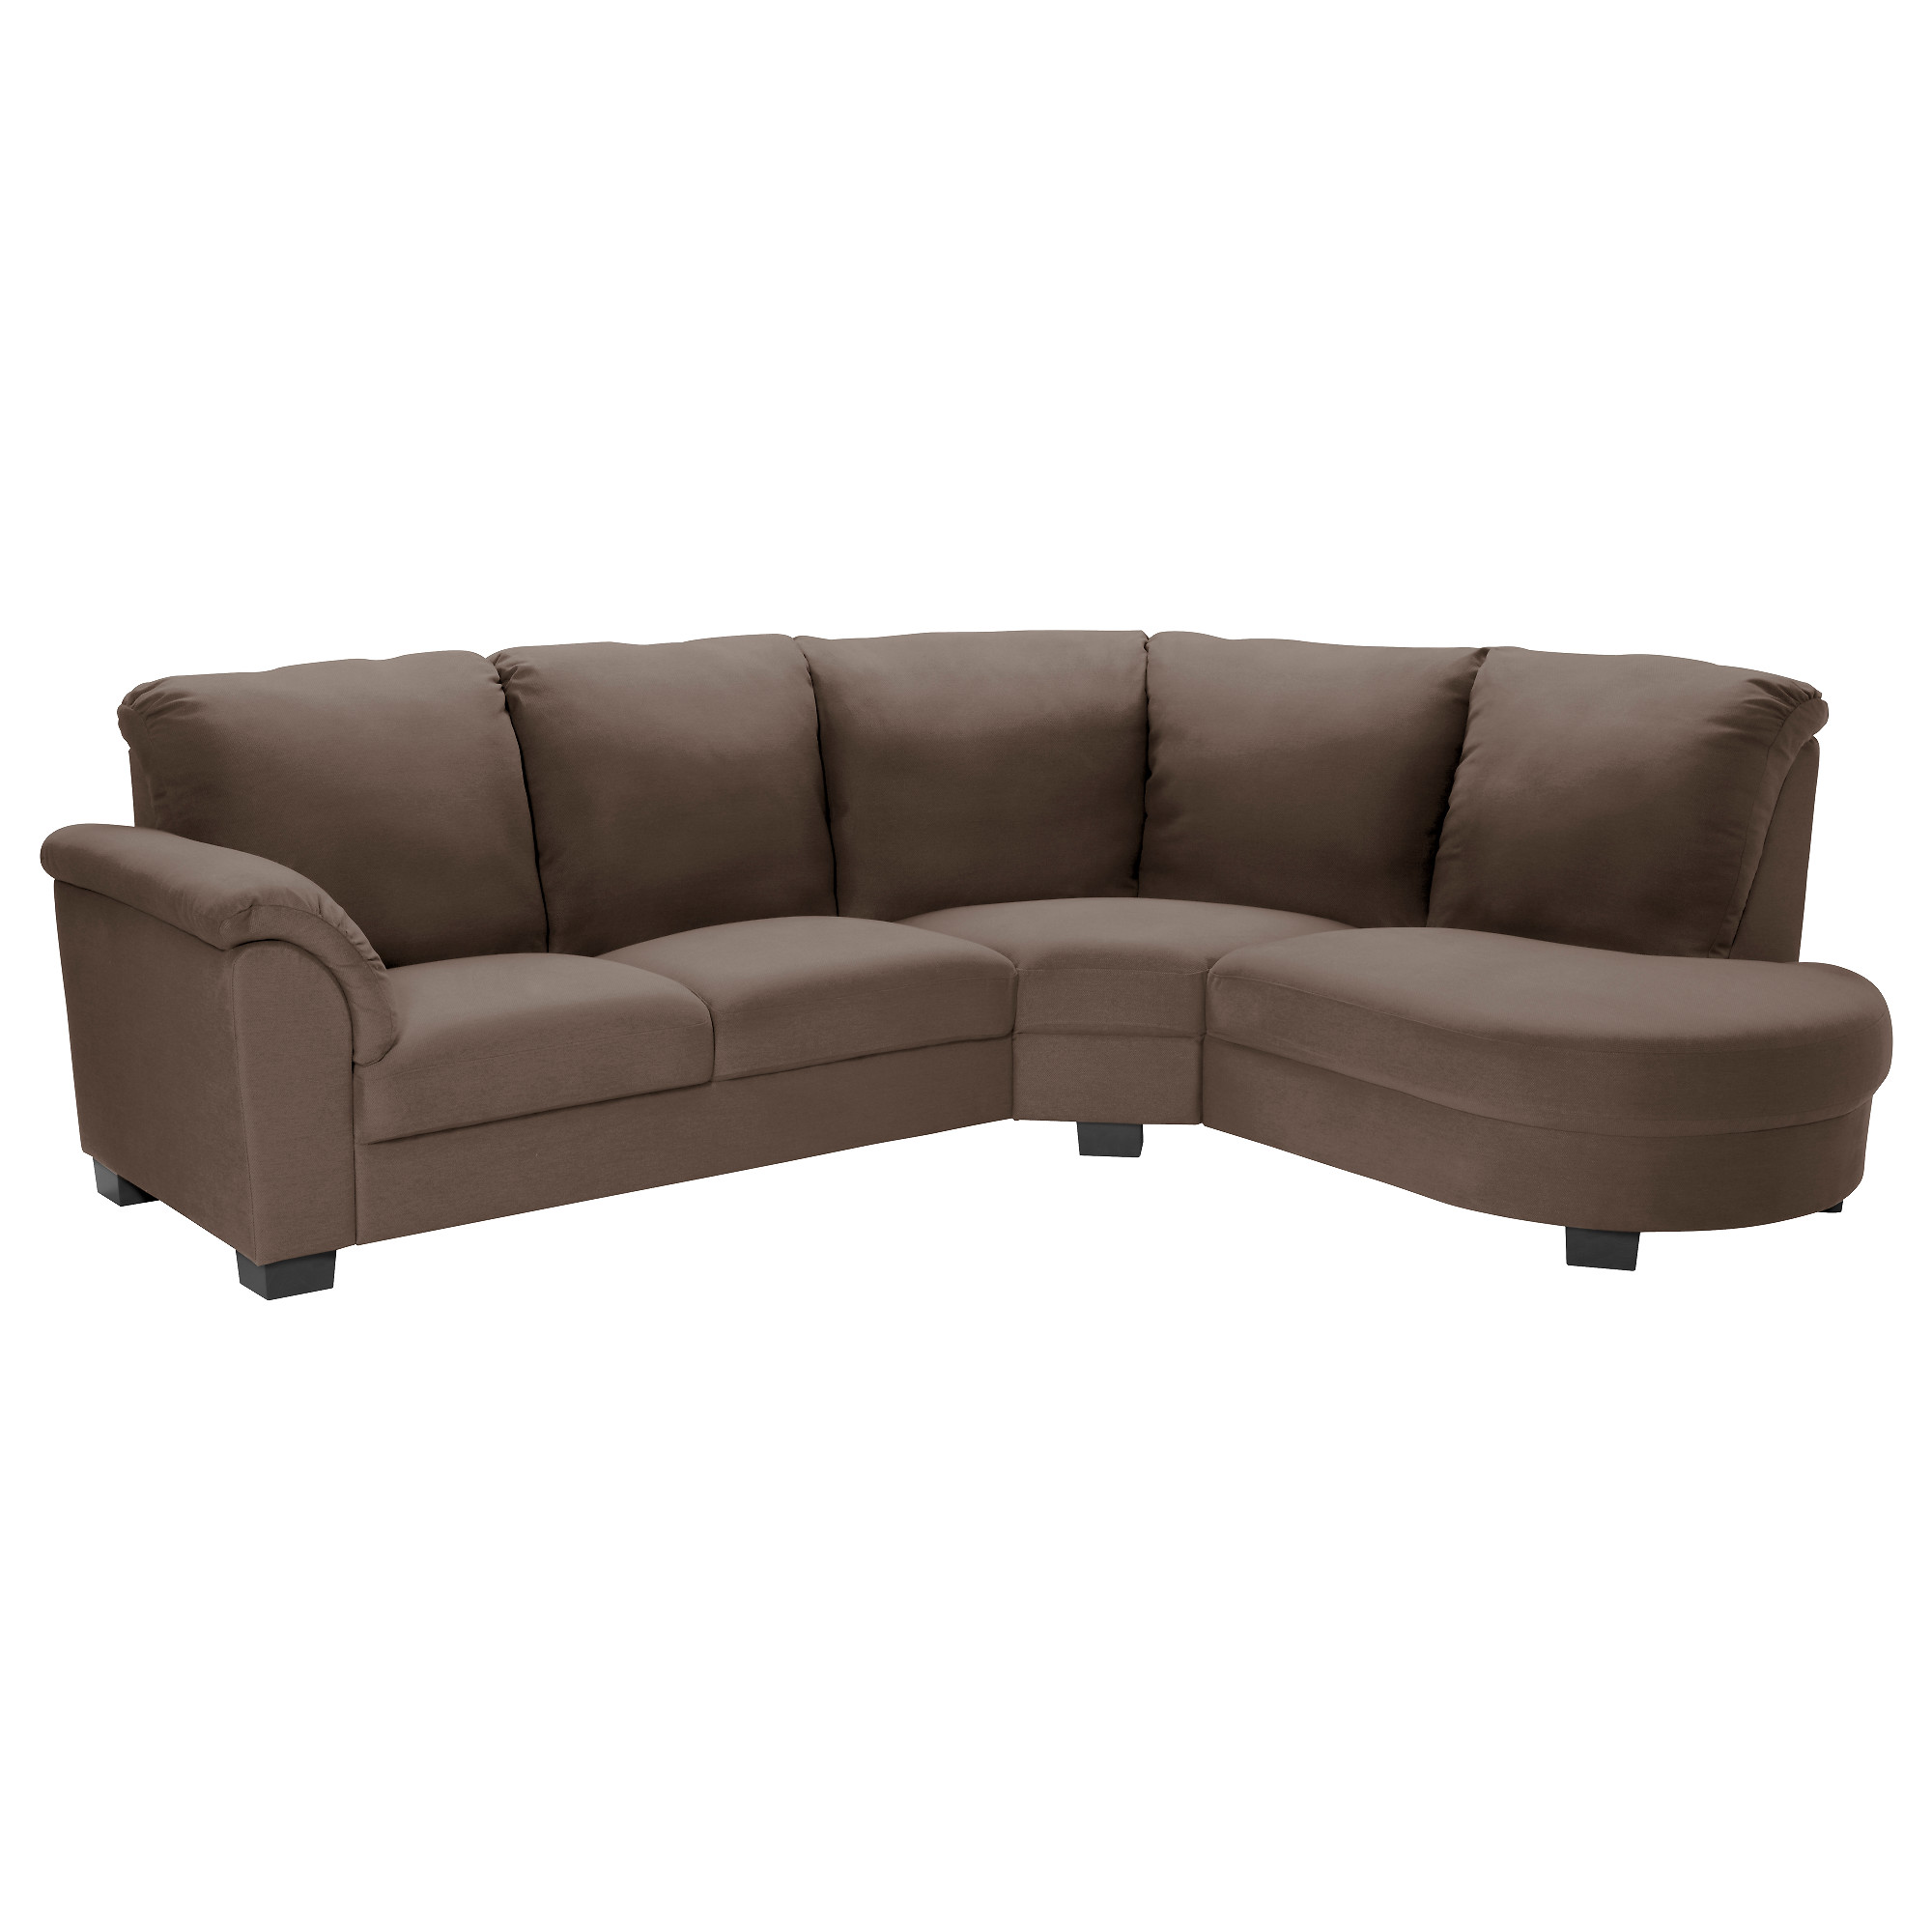 Perfect Sectional Sofas Ikea 91 About Remodel And Couches Ideas With